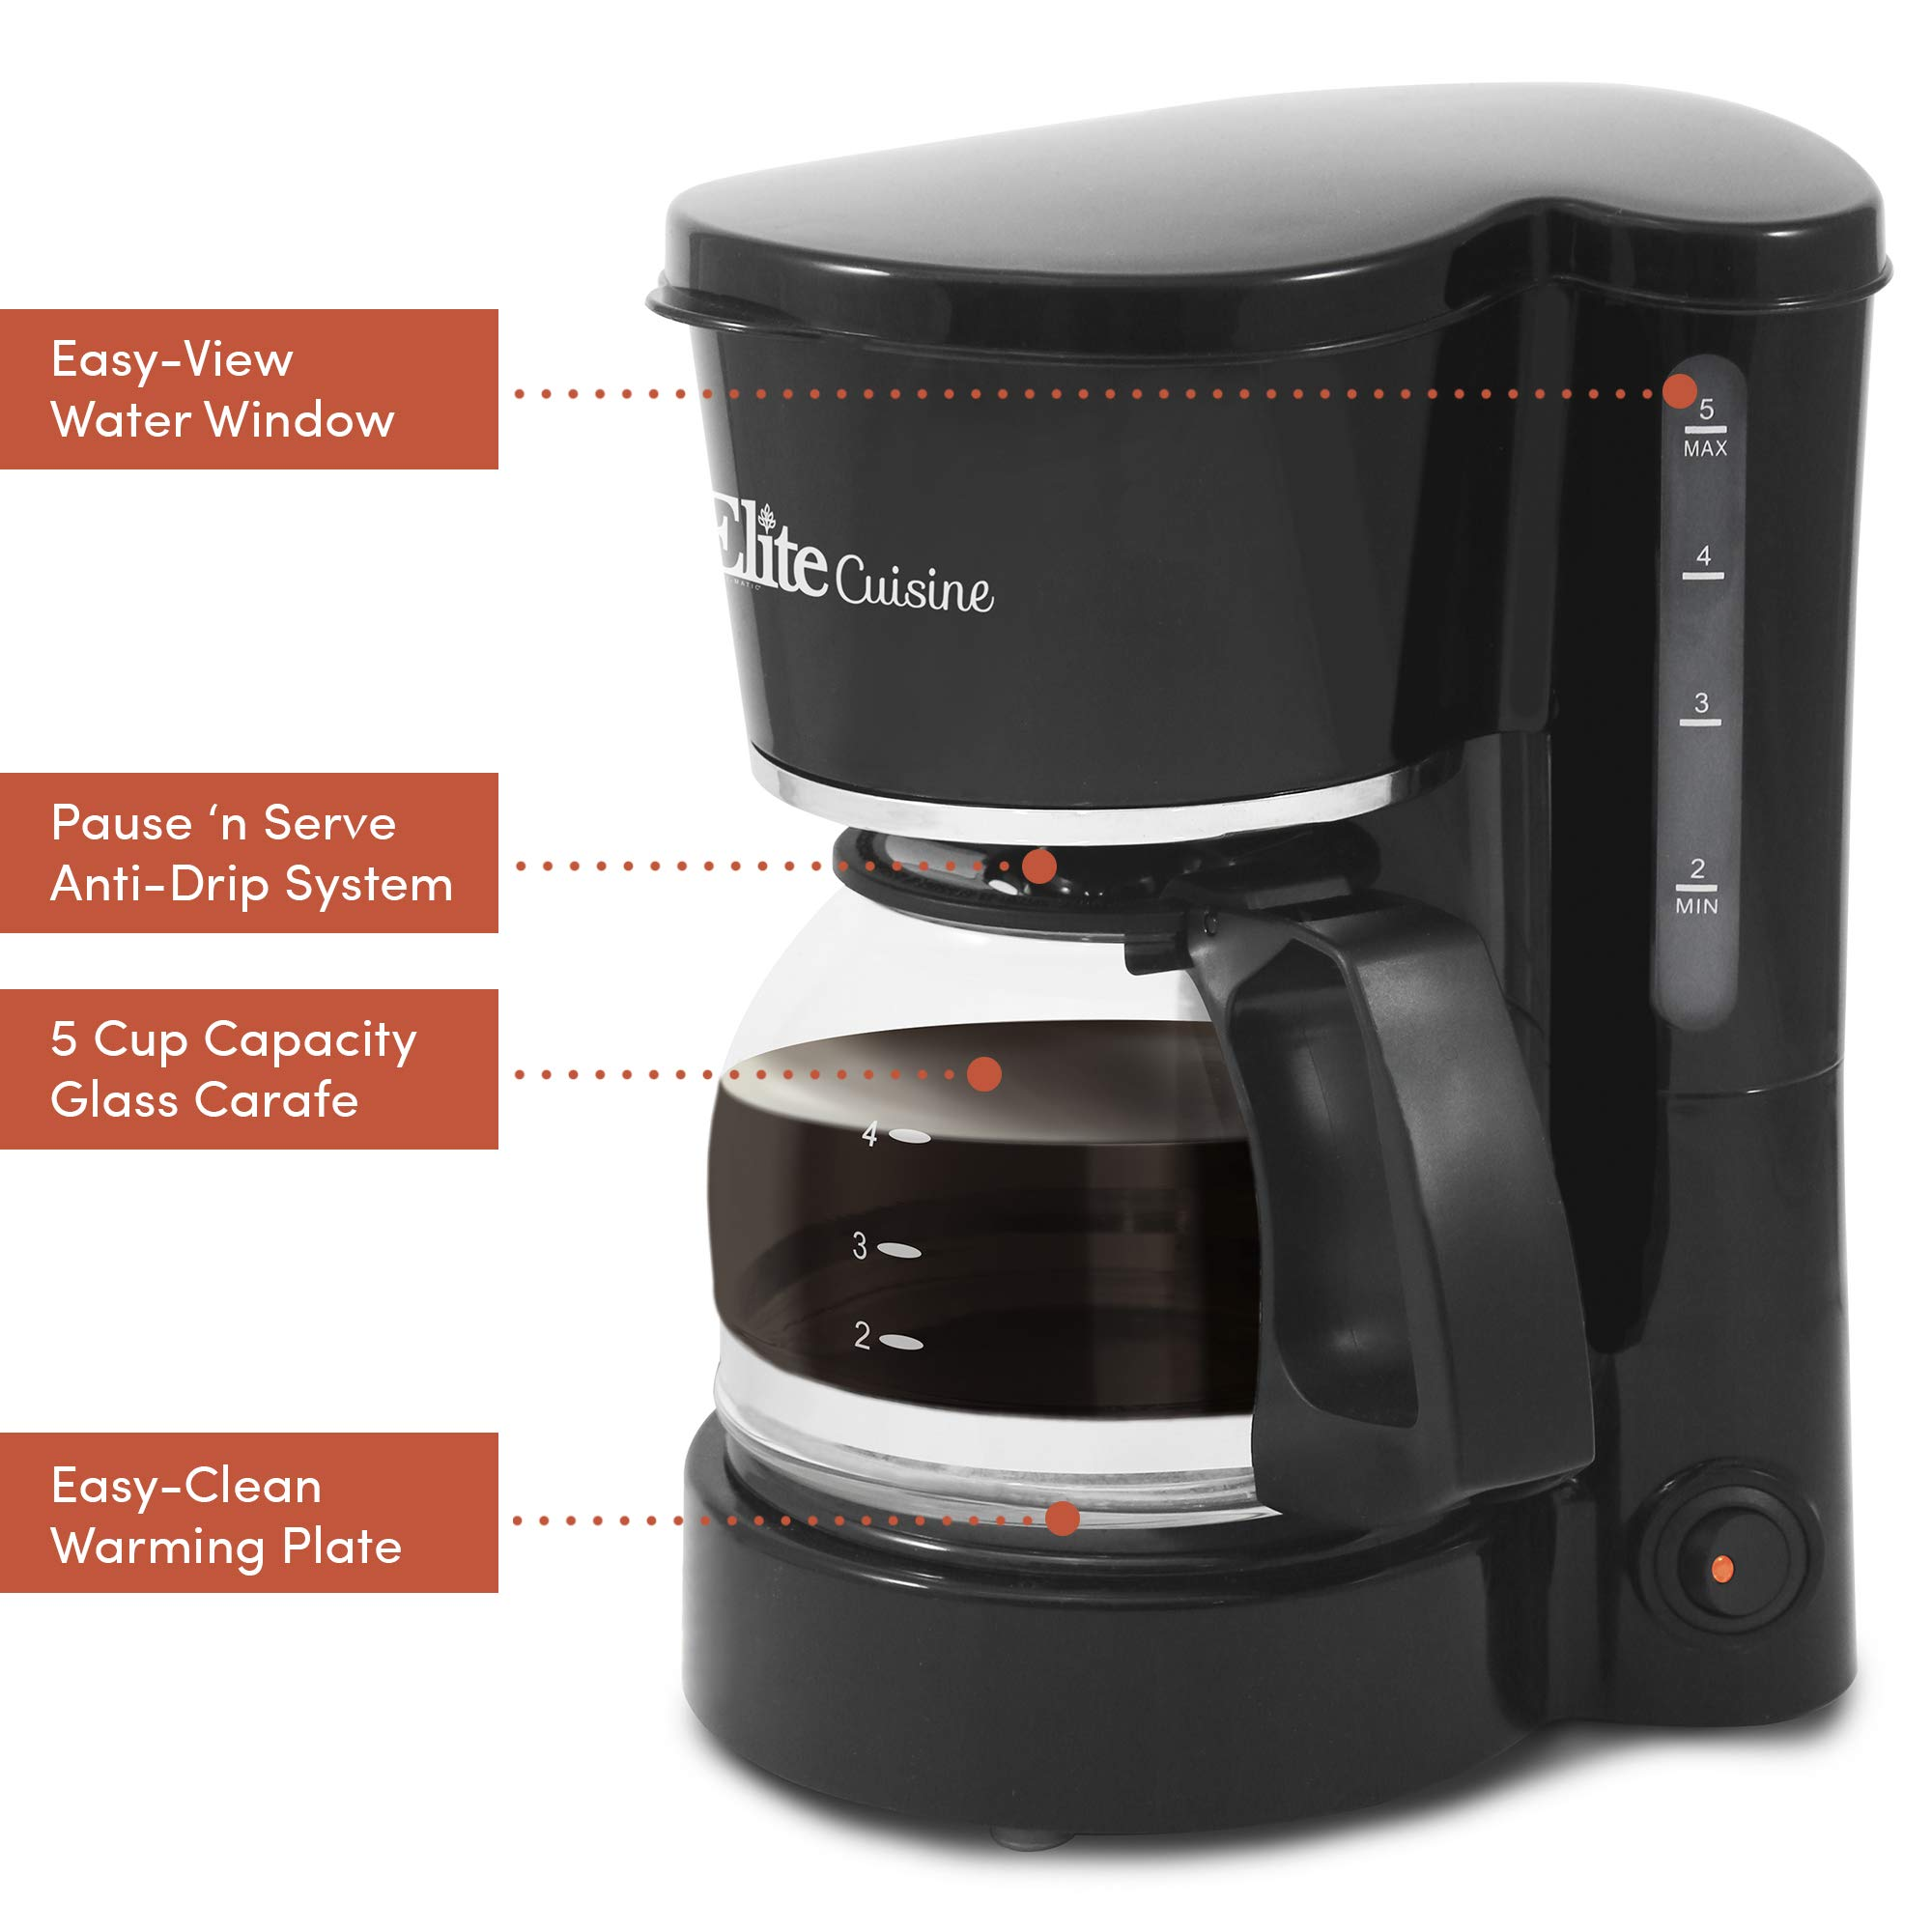 Elite Cuisine EHC-5055 Automatic Brew & Drip Coffee Maker with Pause N Serve Reusable Filter, On/Off Switch, Water Level Indicator, 5 Cup Capacity, Black by Maxi-Matic (Image #6)